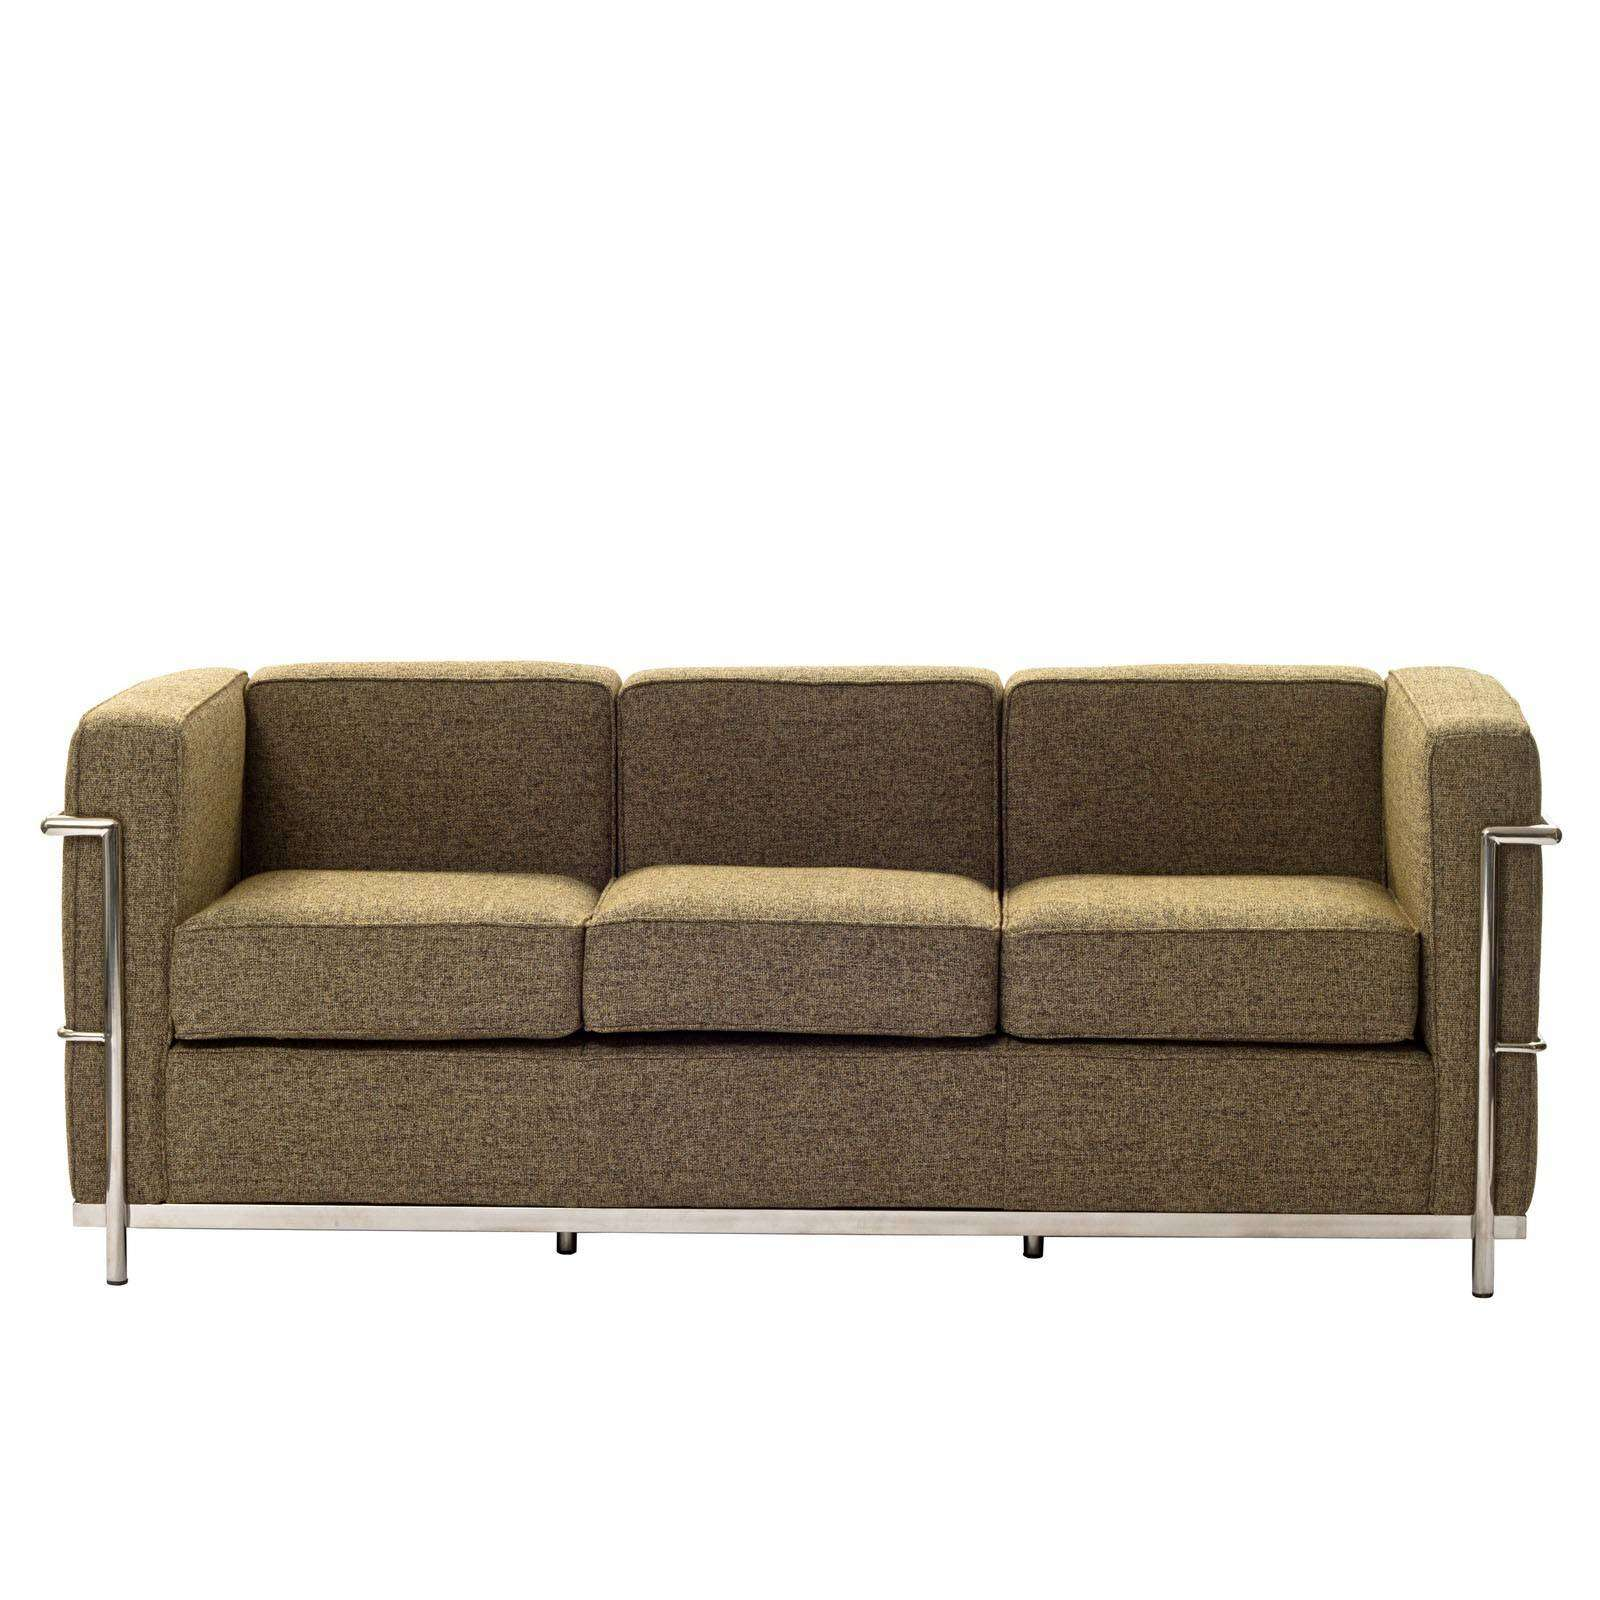 Le corbusier style lc2 sofa couch wool for Le corbusier sofa nachbau